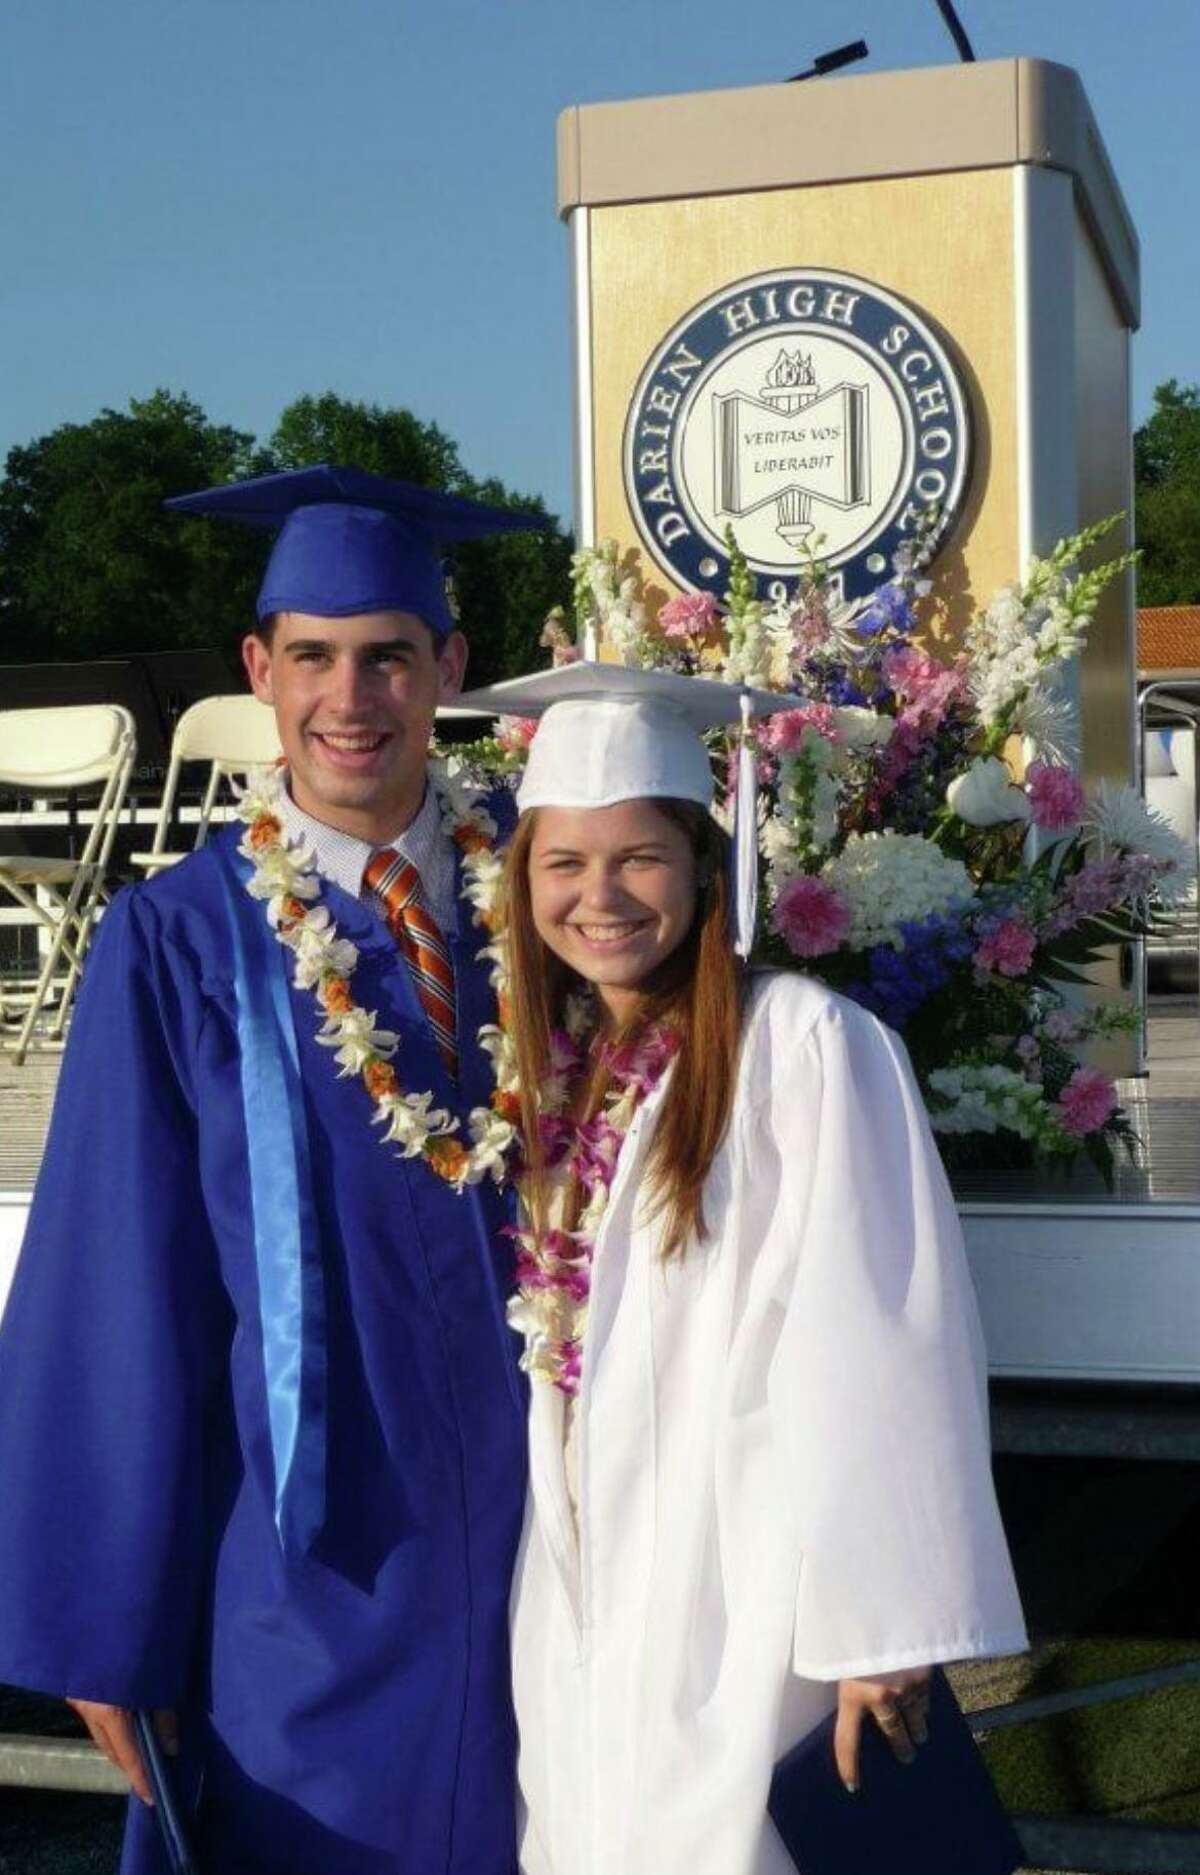 Darien High alum Jay Alter, shown here with fellow Class of 2012 member Liz, now his wife, at their graduation. The couple got engaged at Weed Beach.